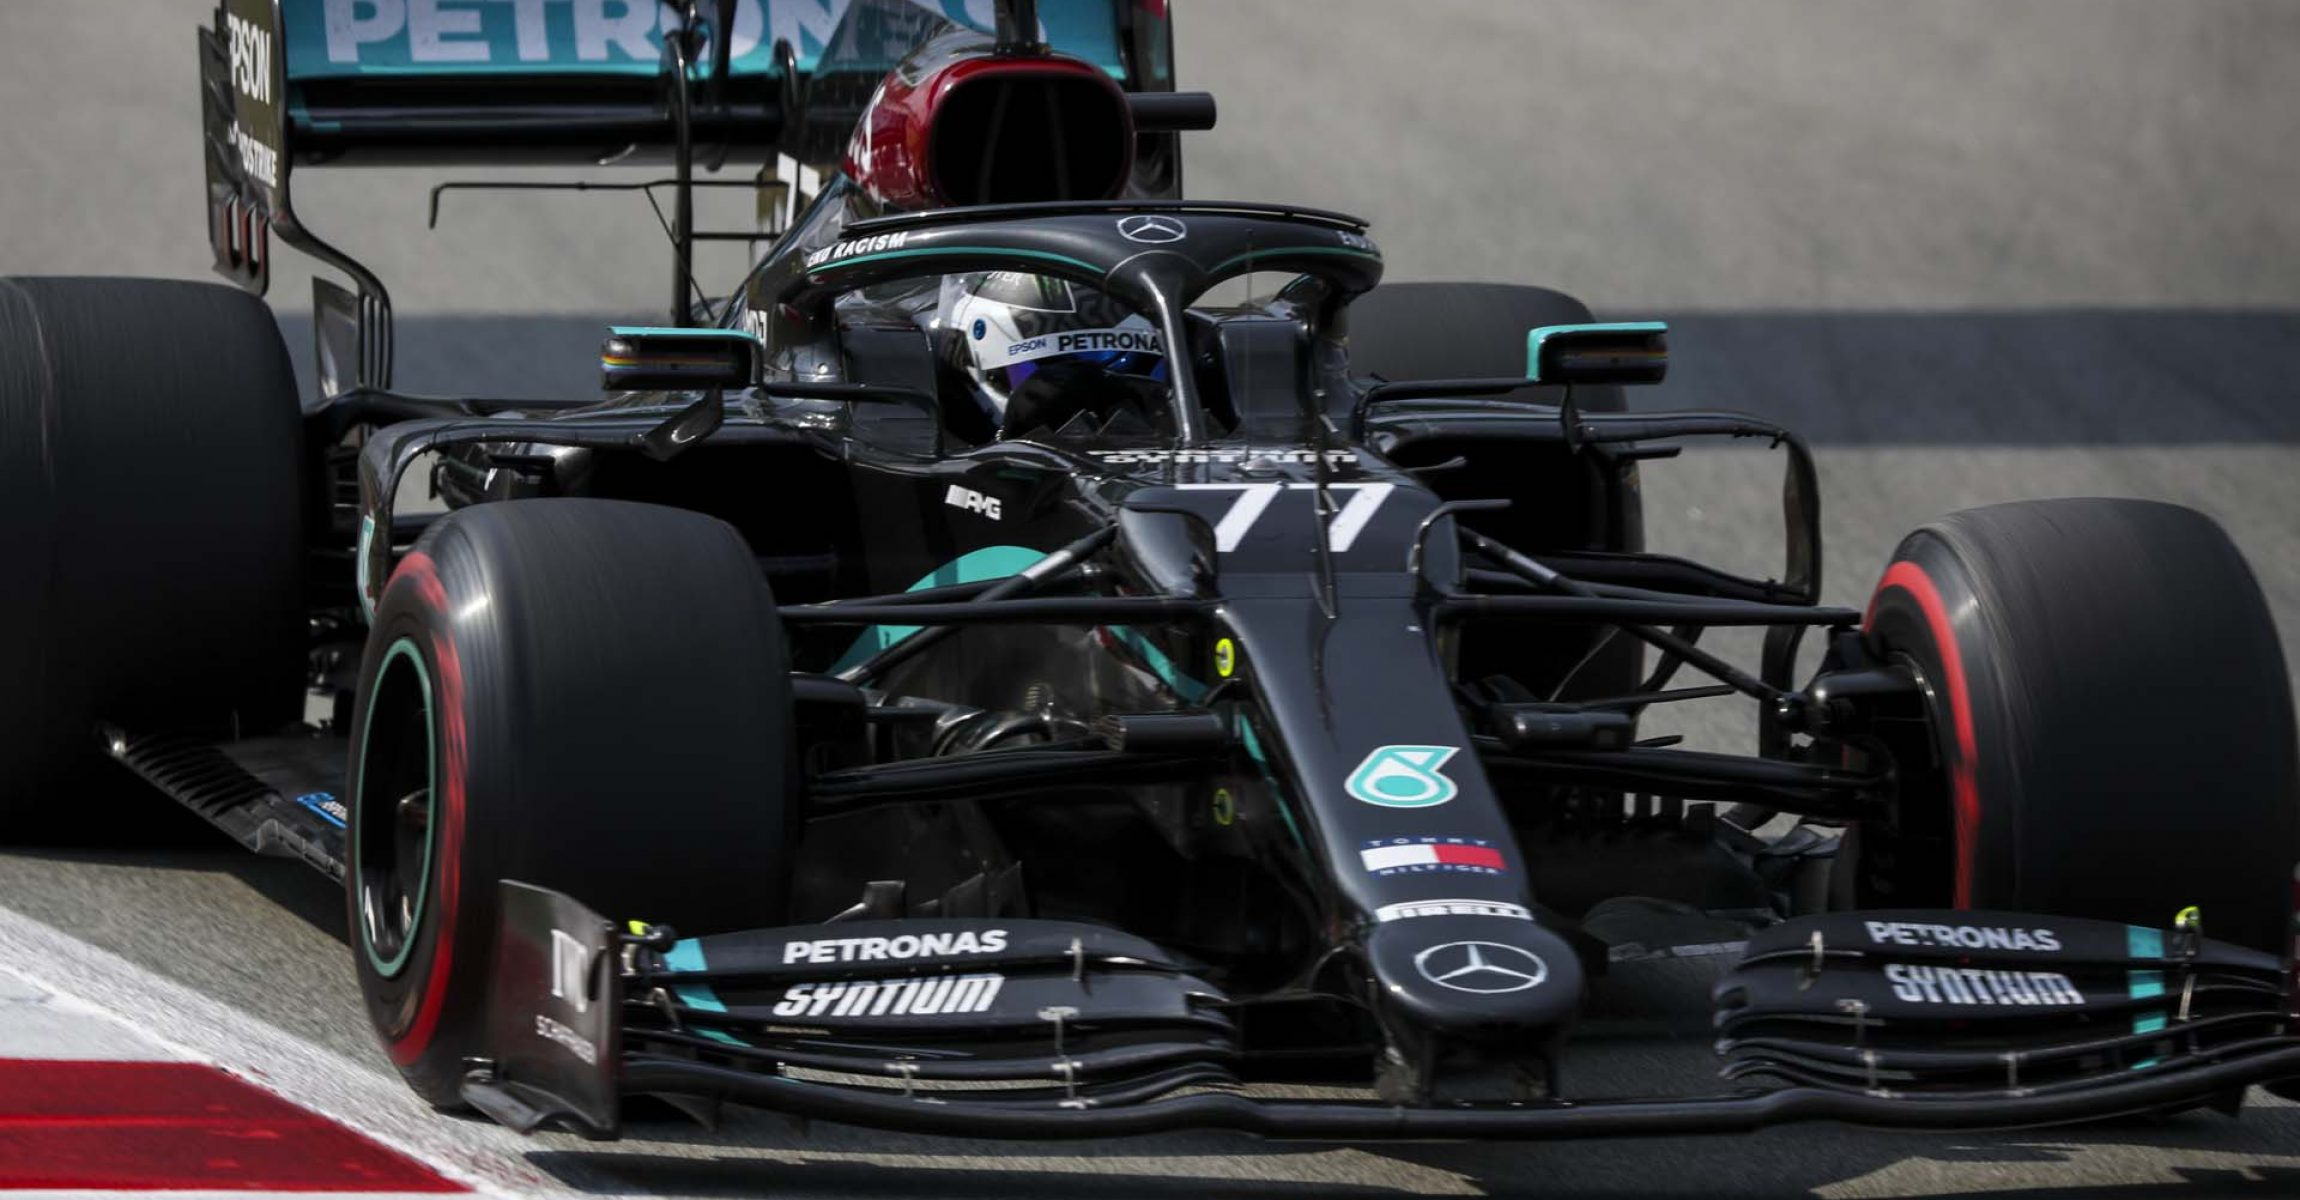 2020 Spanish Grand Prix, Sunday - LAT Images Valtteri Bottas Mercedes